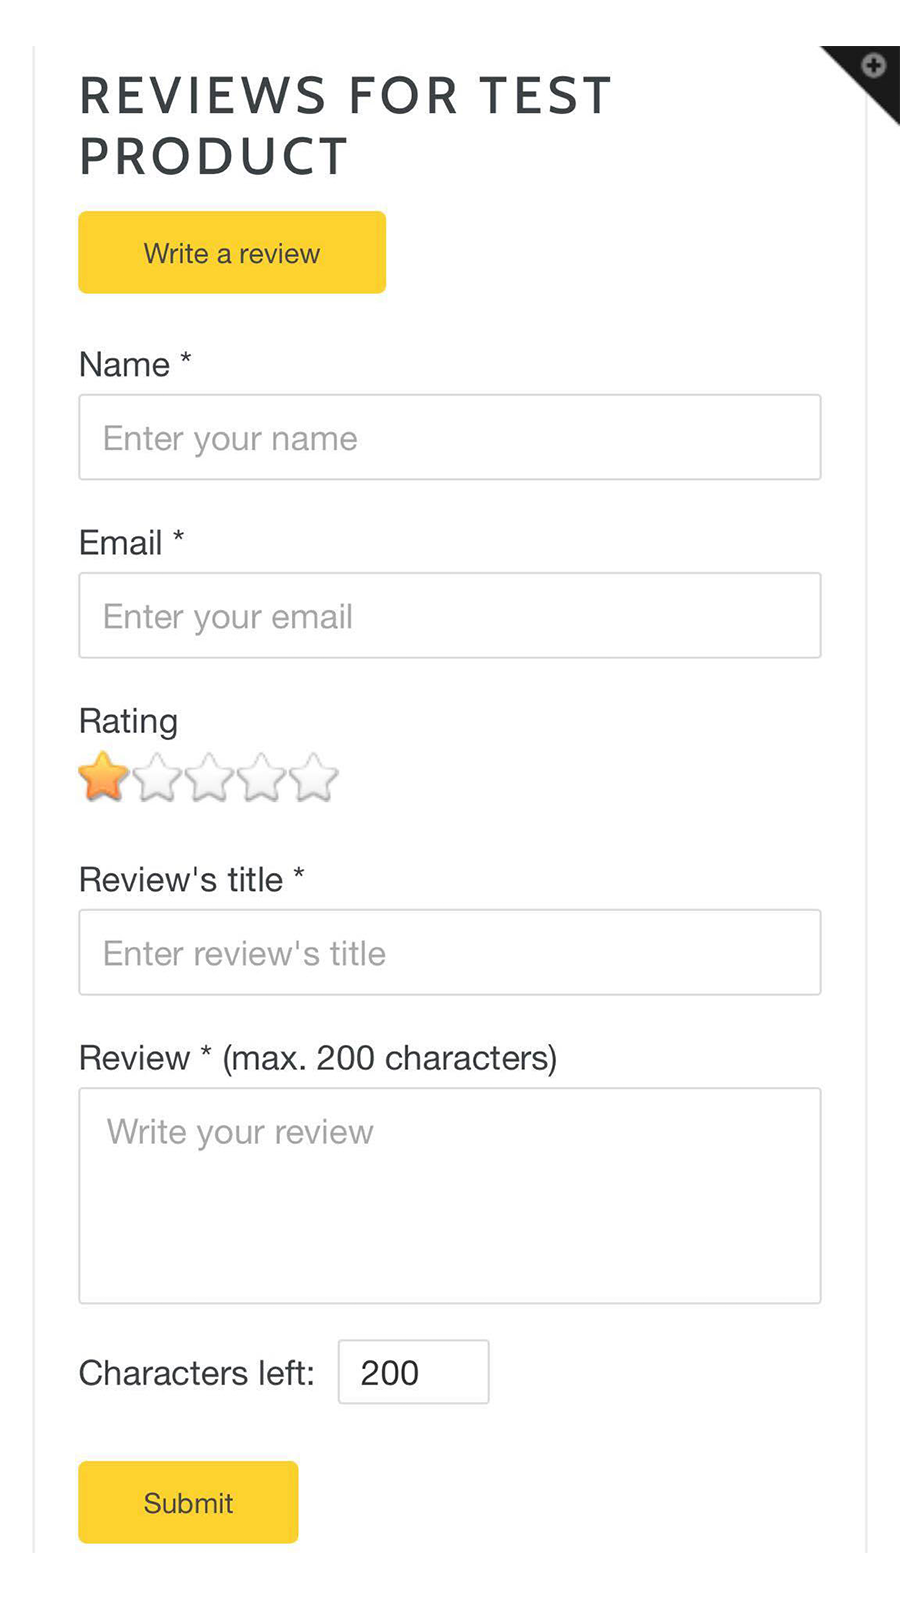 Review form